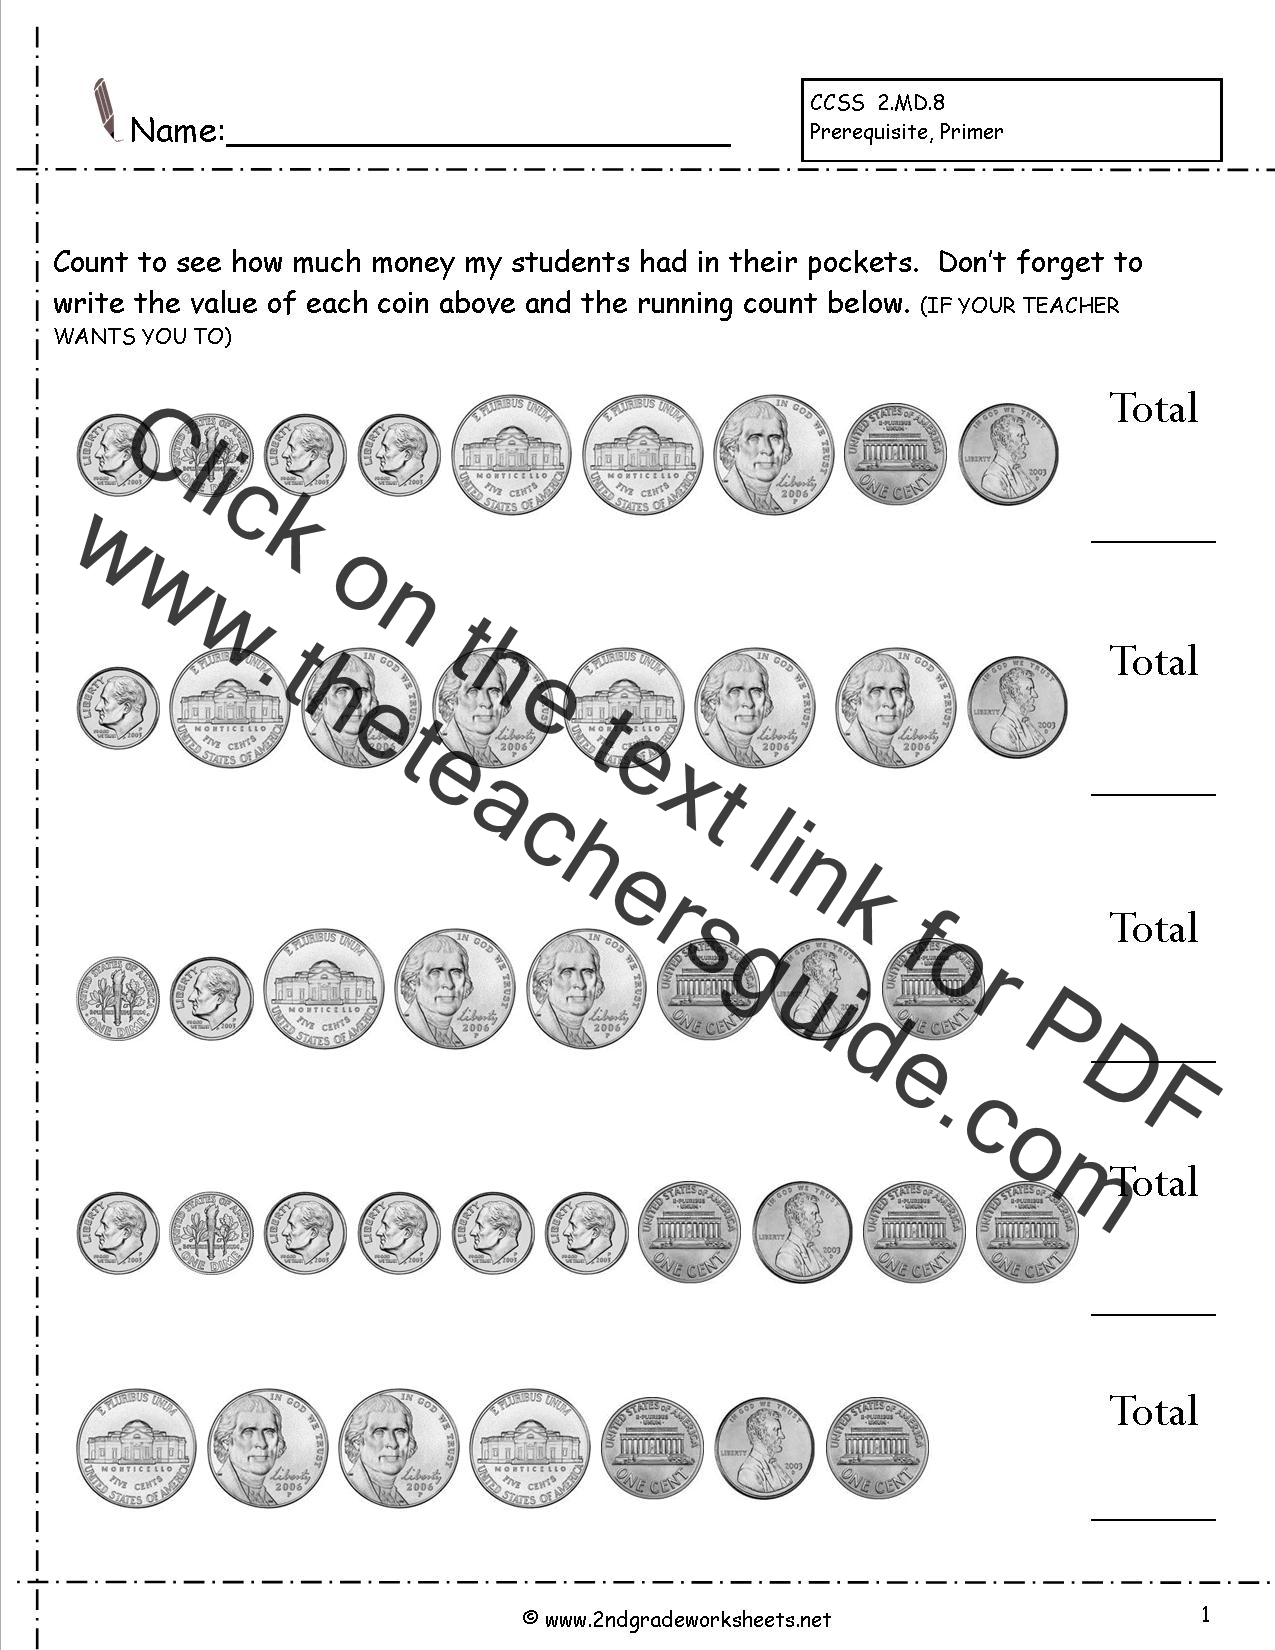 image relating to Free Printable Money Worksheets called Counting Cash and Economic Worksheets and Printouts